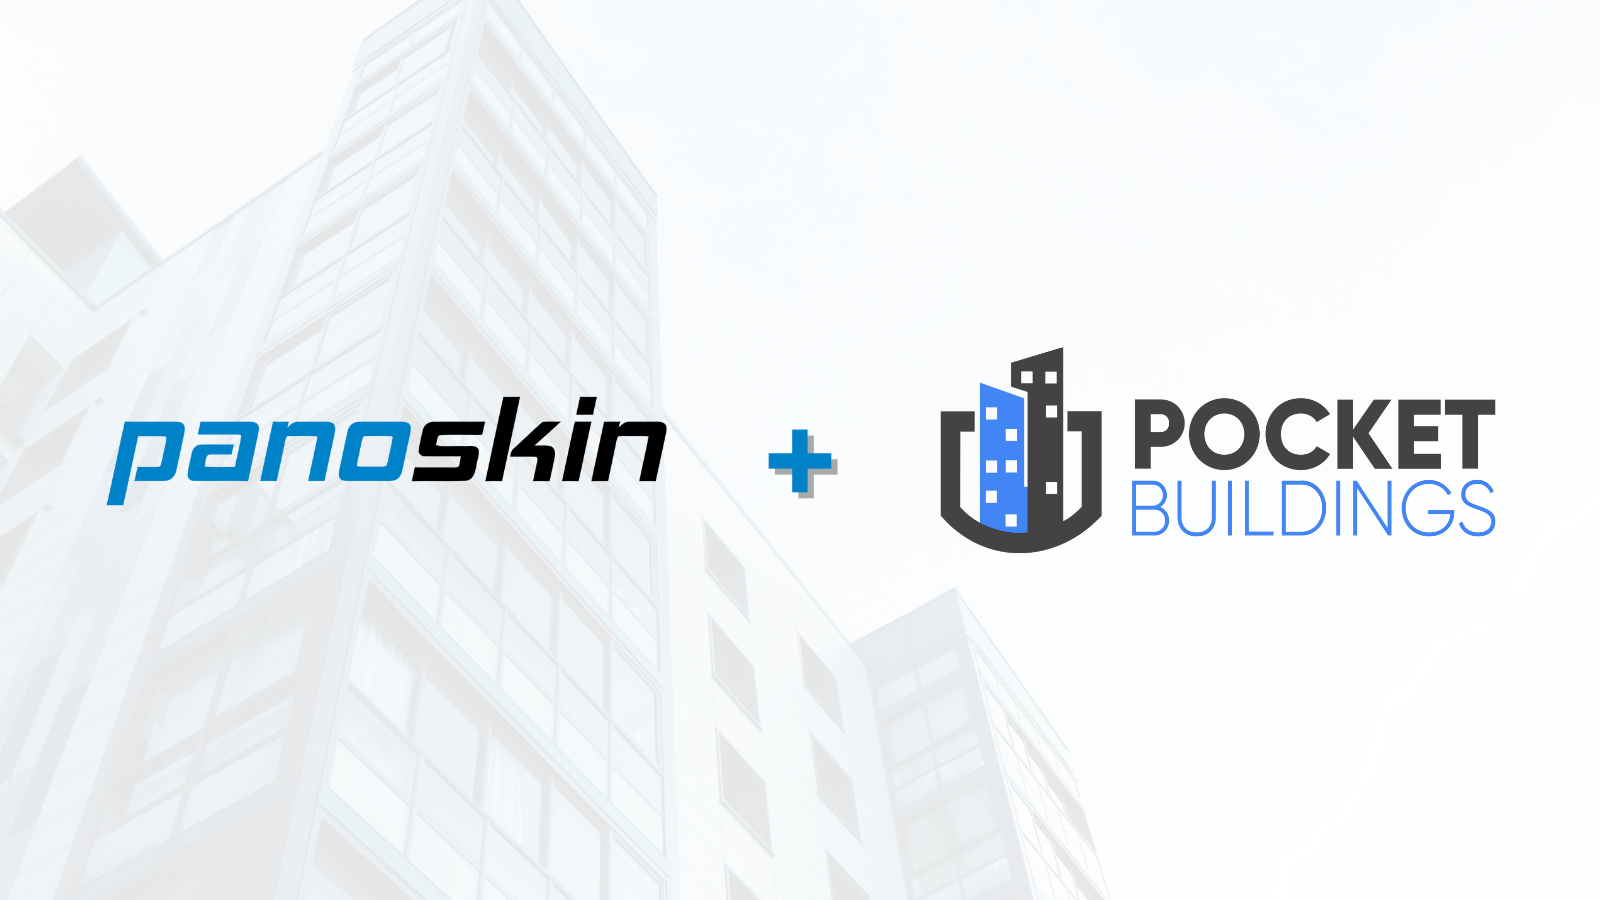 Panoskin by LCP360 Now Supported by PocketBuildings, a New Building Profile Platform for Visual Content and Files